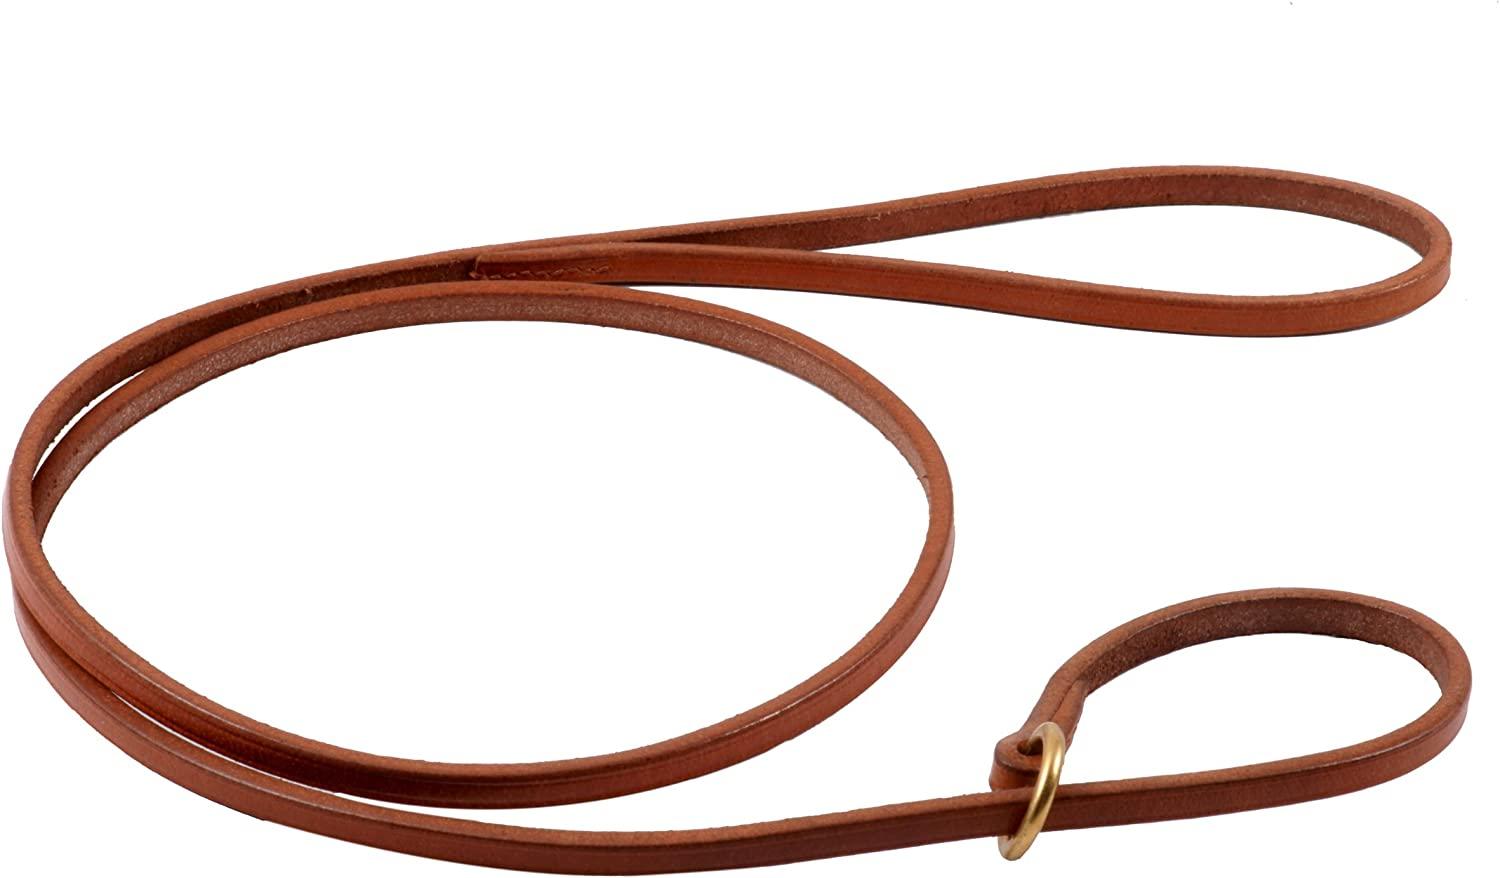 Alvalley Flat Slip Lead for Dogs 3 16 in x 4ft